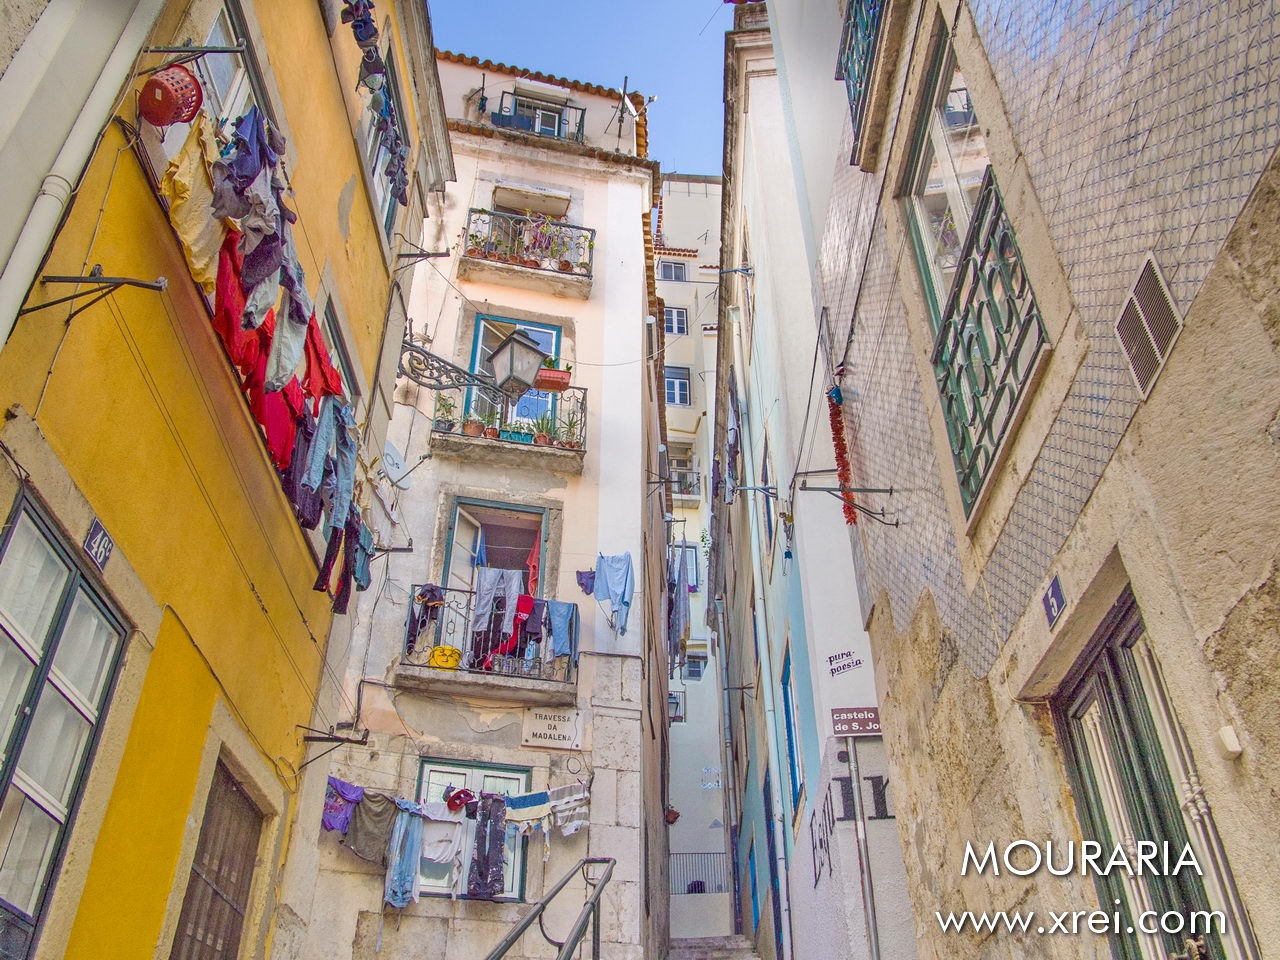 Mouraria is a neighborhood of labyrinthine streets, with buildings built on the hillside, with different colors and diverse environments.